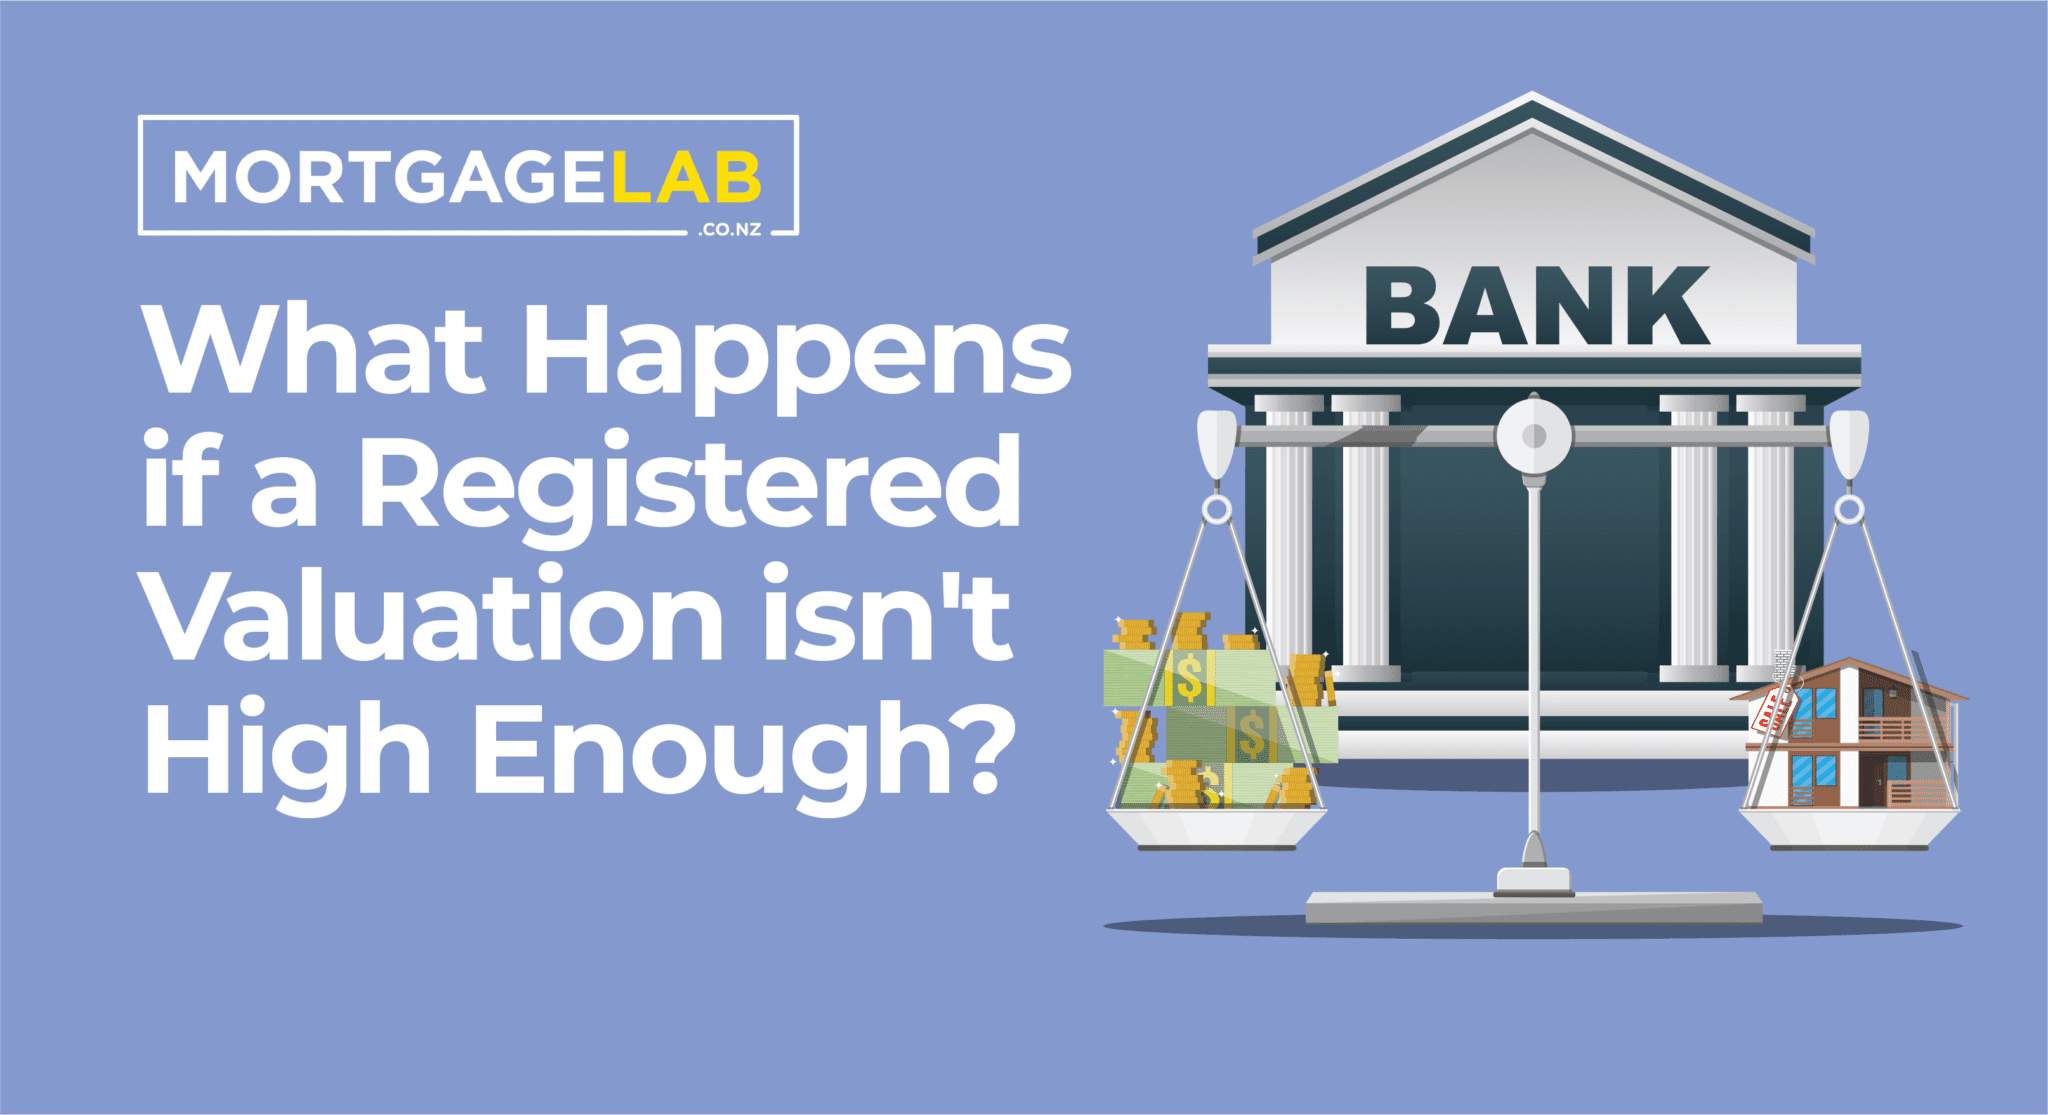 What happens if a Registered Valuation isn't high enough?